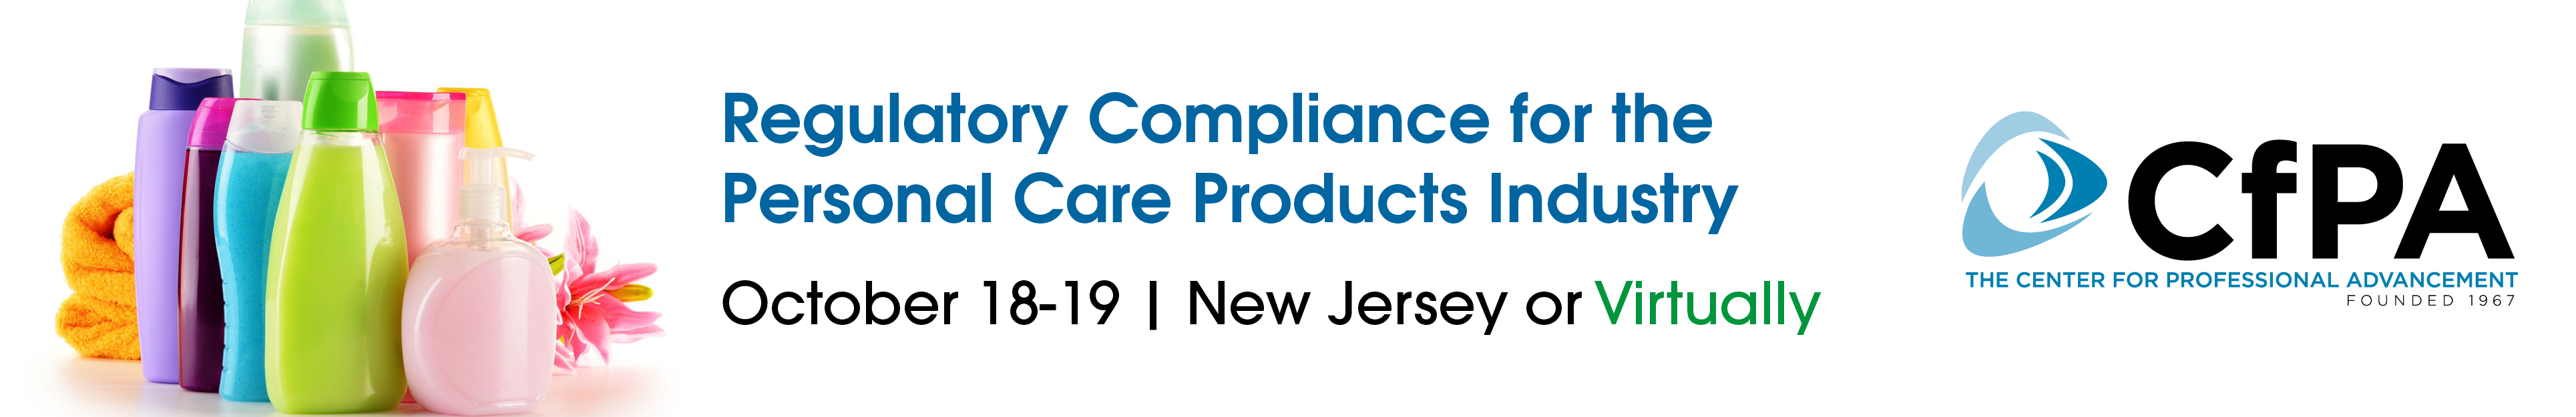 Regulatory Compliance for the Personal Care Products Industry